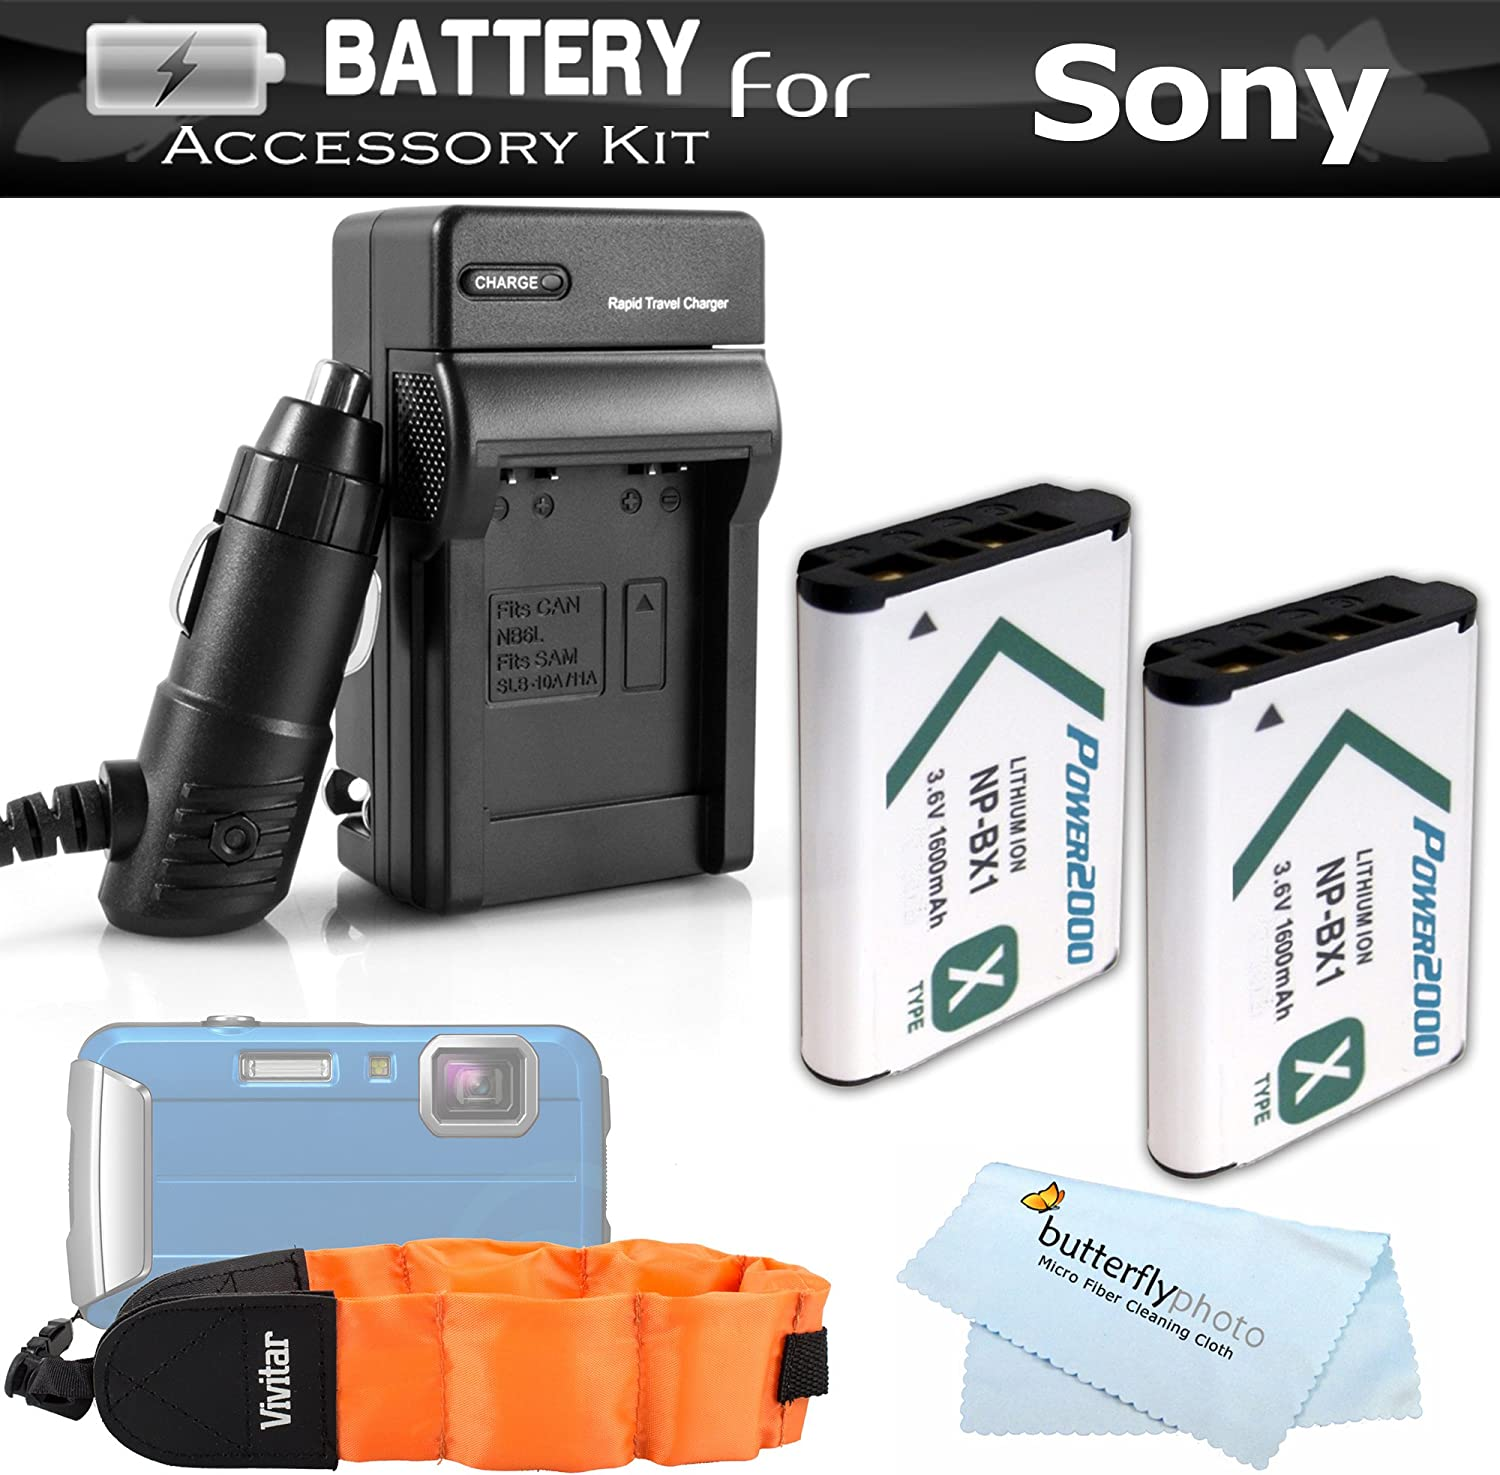 SERVICE/_PARTS New Door LID Battery Assy for Sony Action Cam Camera HDR-AS100V HDR-AS200V X25895644